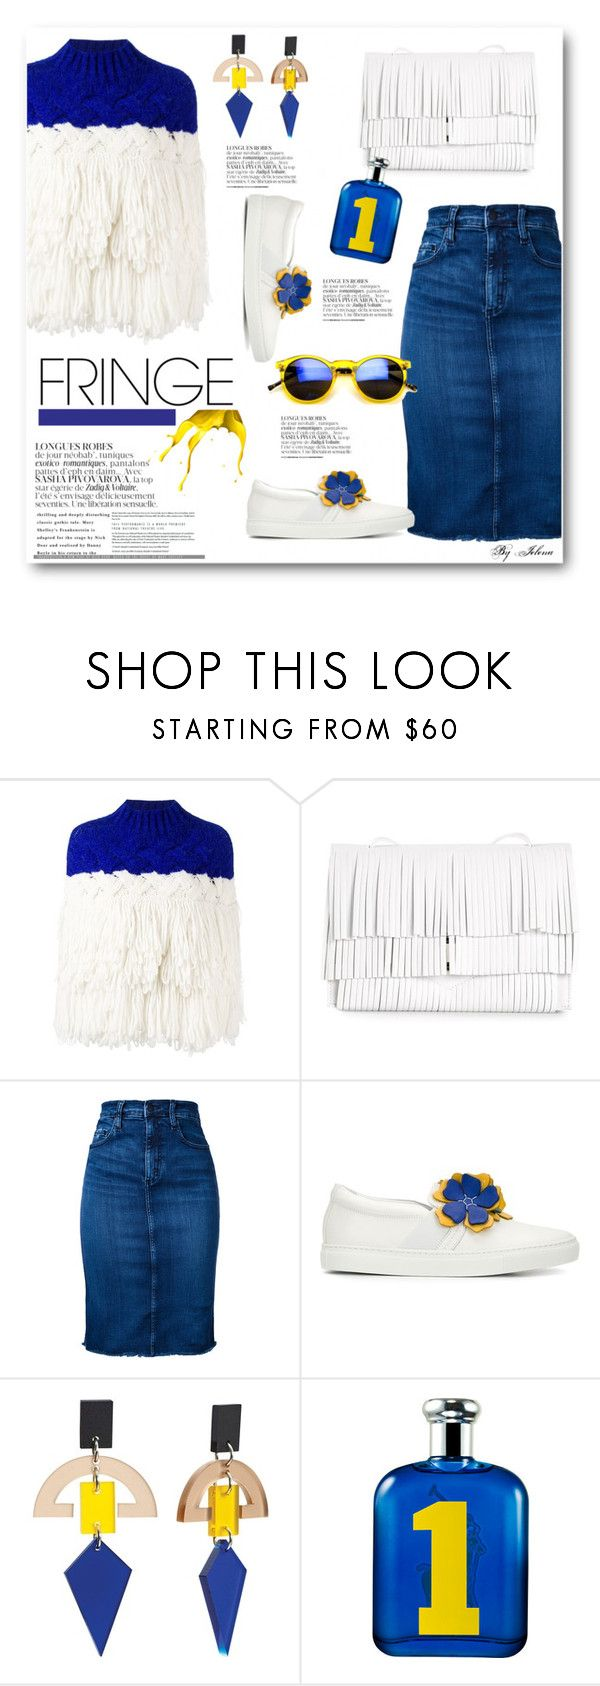 """""""Shimmy Shimmy: Fringe"""" by jelenalazarevicpo ❤ liked on Polyvore featuring Delpozo, Proenza Schouler, Nobody Denim, Lanvin, Toolally and Ralph Lauren"""